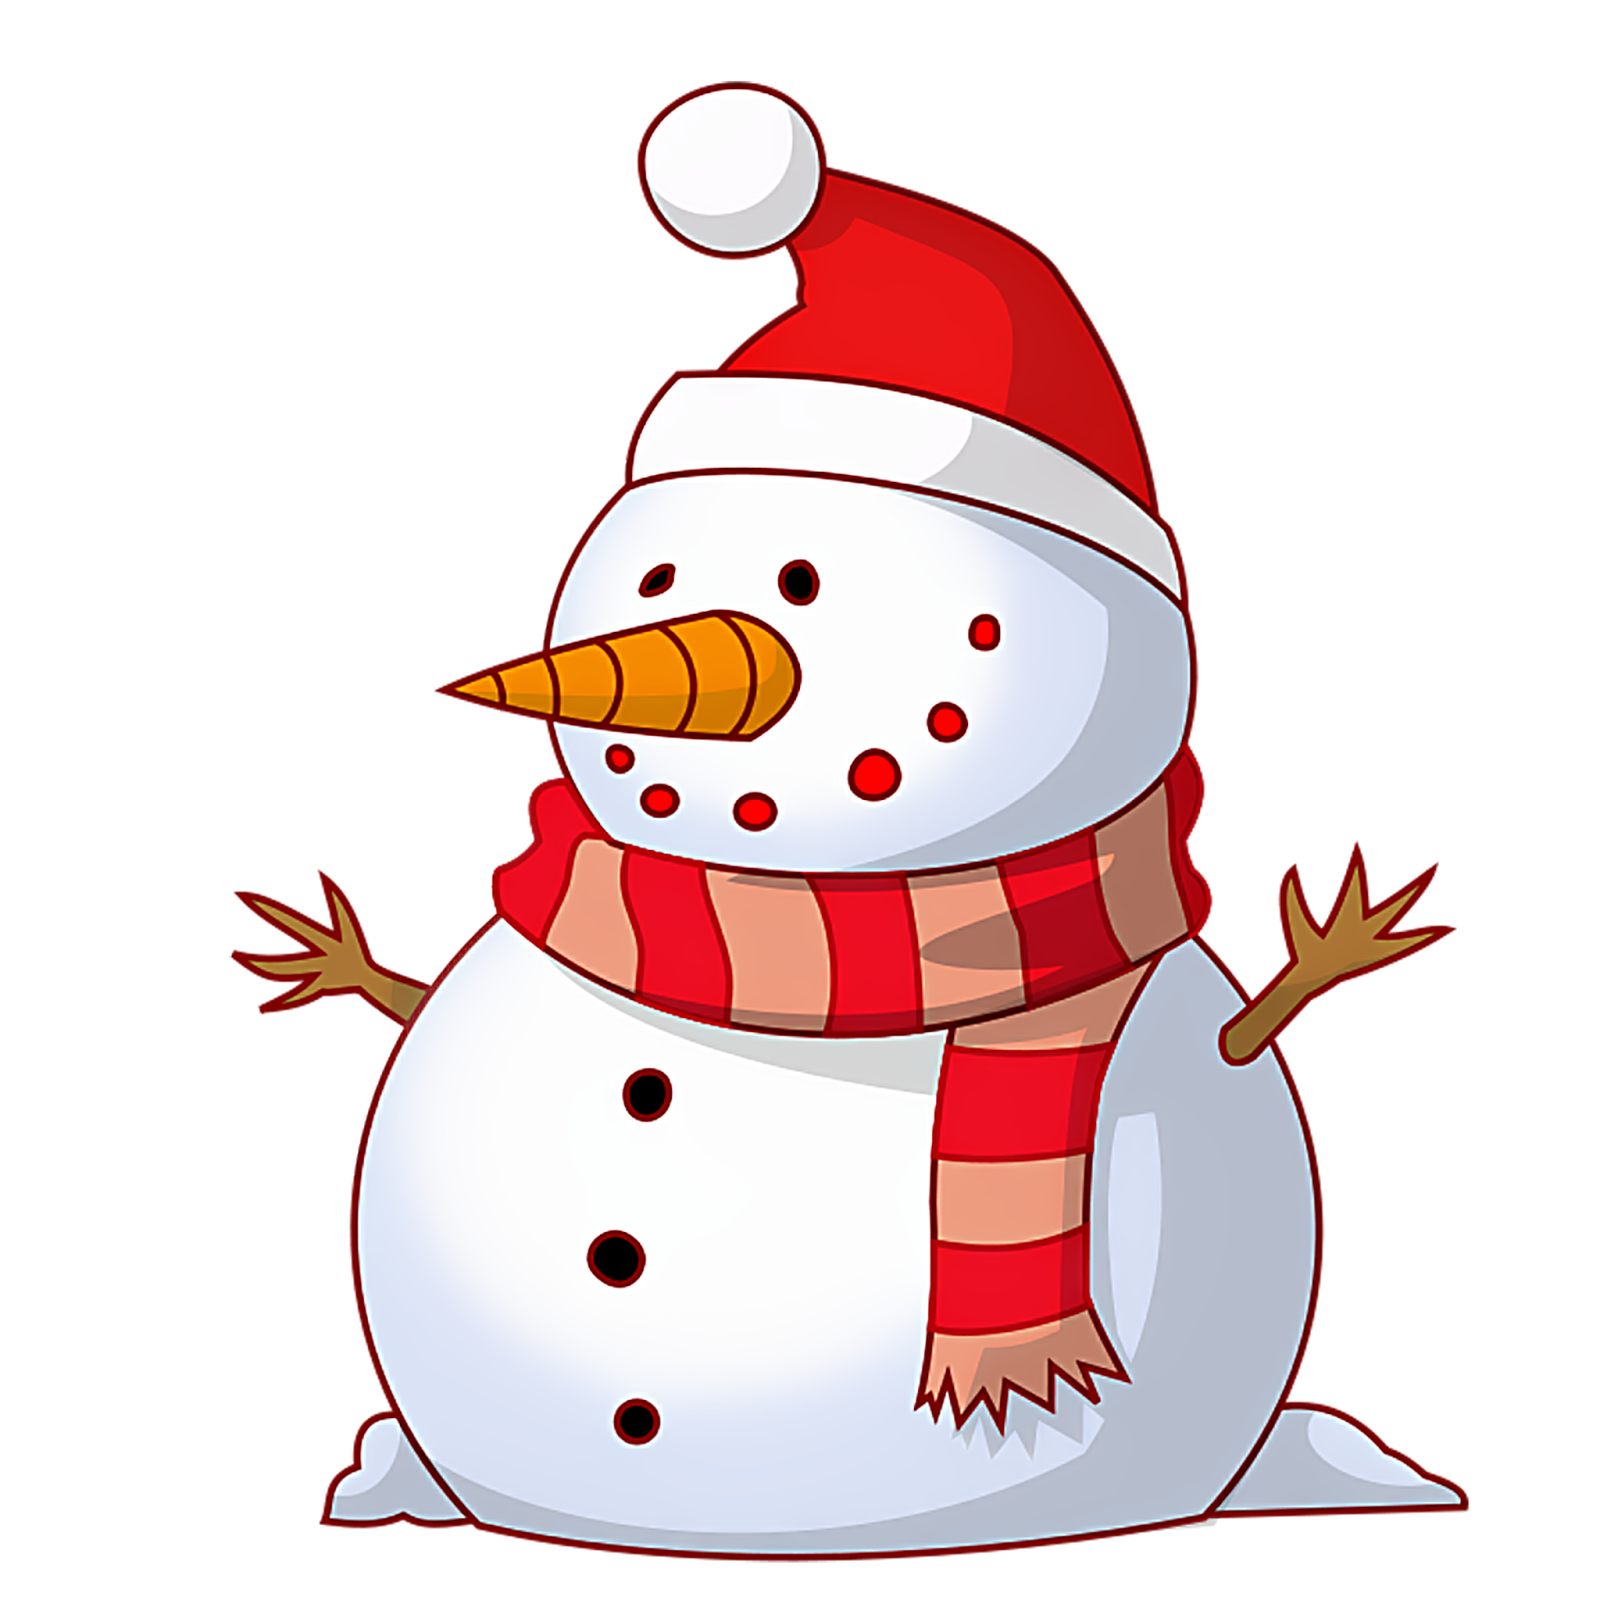 Merry Christmas Snowman Clipart Hd For Wallpapers And Cards Hd In Png